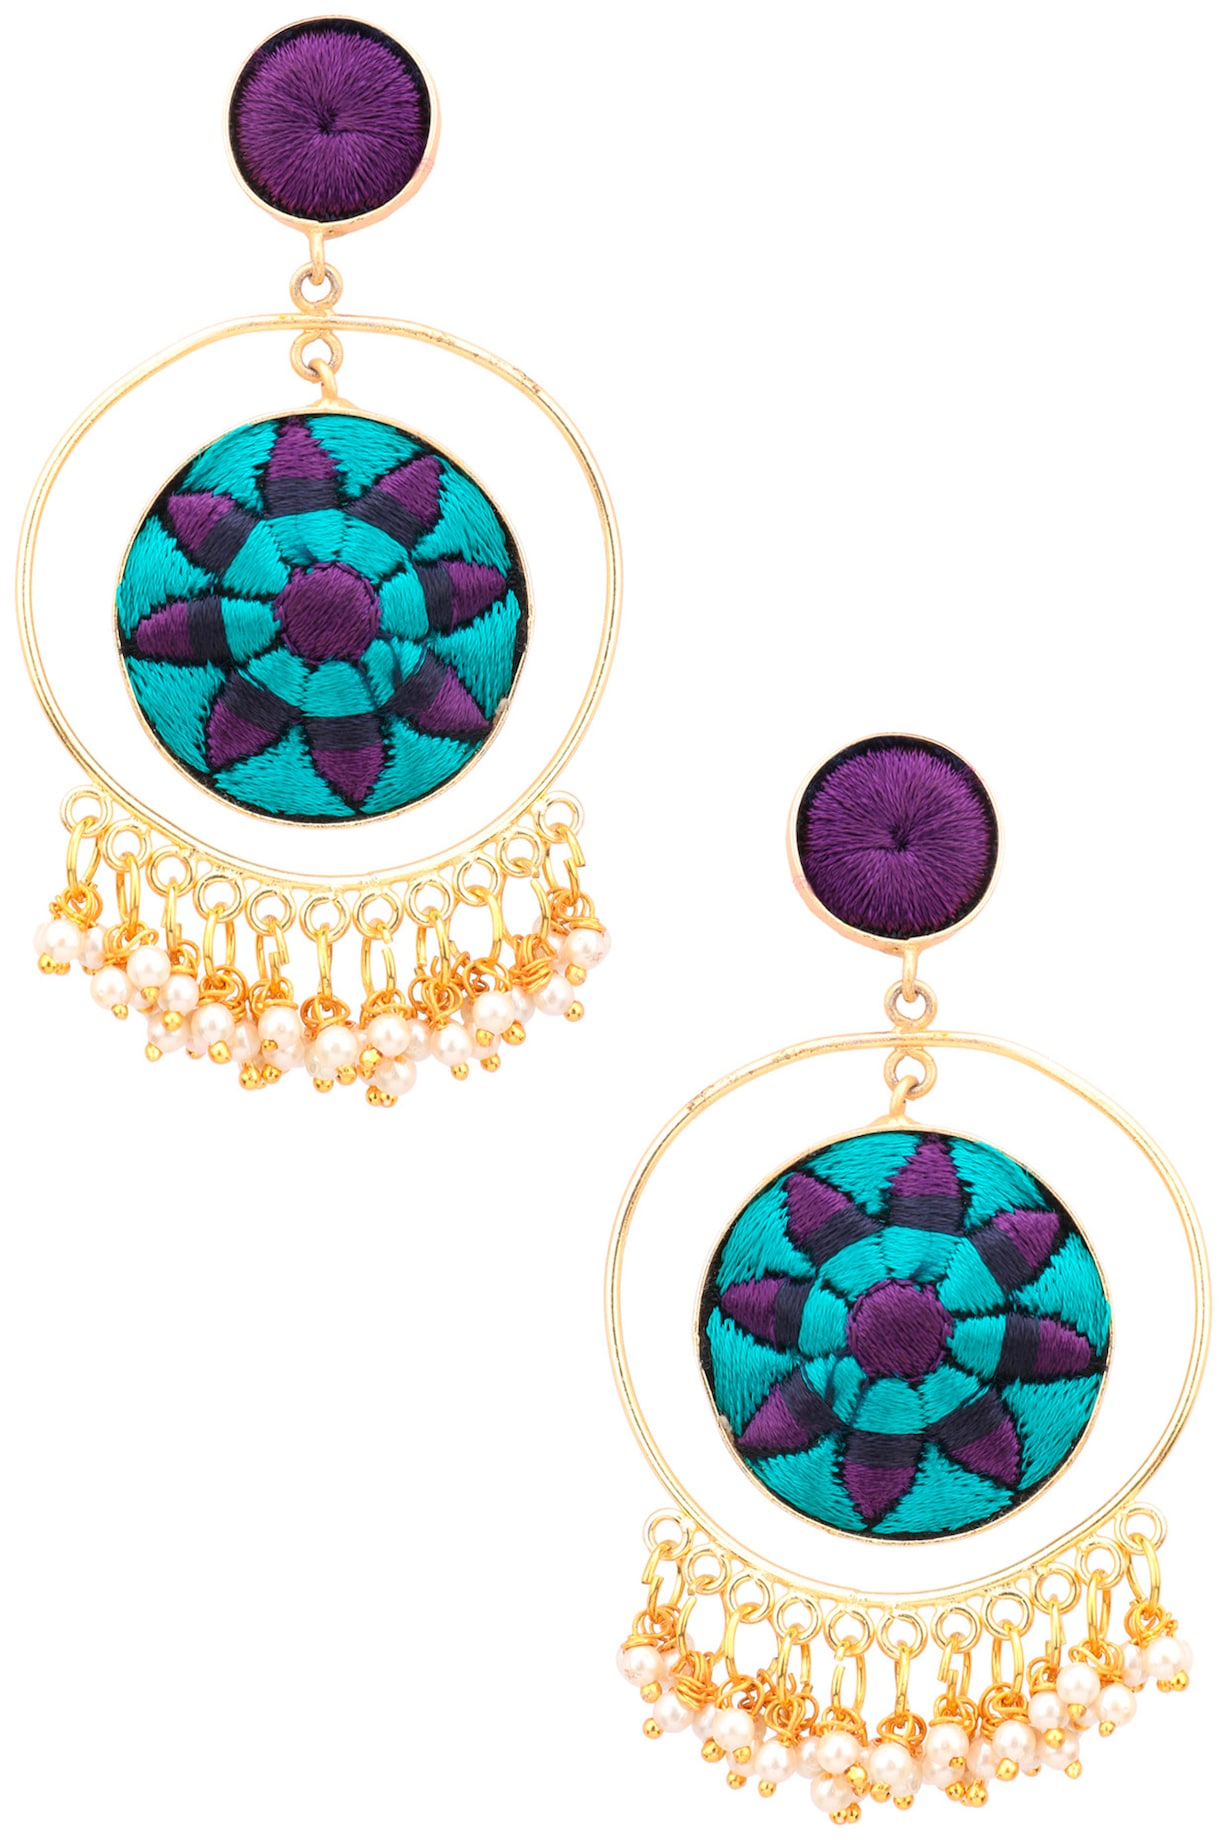 Bauble Bazaar Earrings